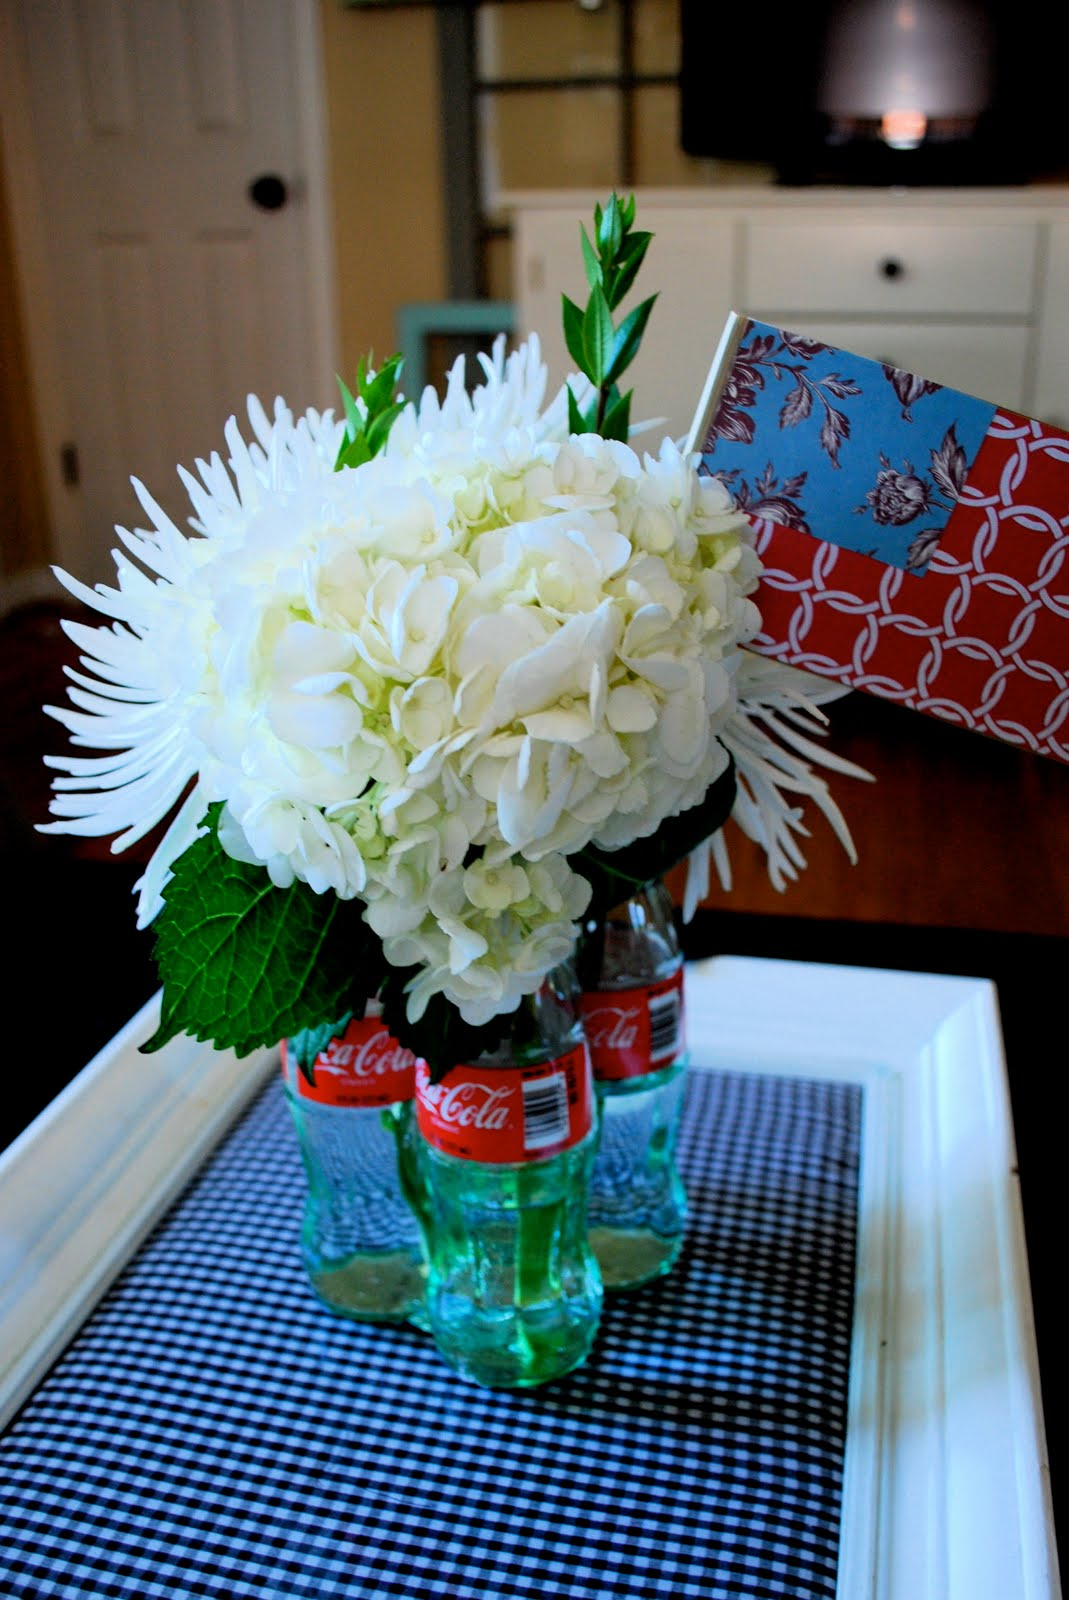 Wednesday 39 s wowzers inspiration while i 39 m doing laundry for Glass bottle centerpieces